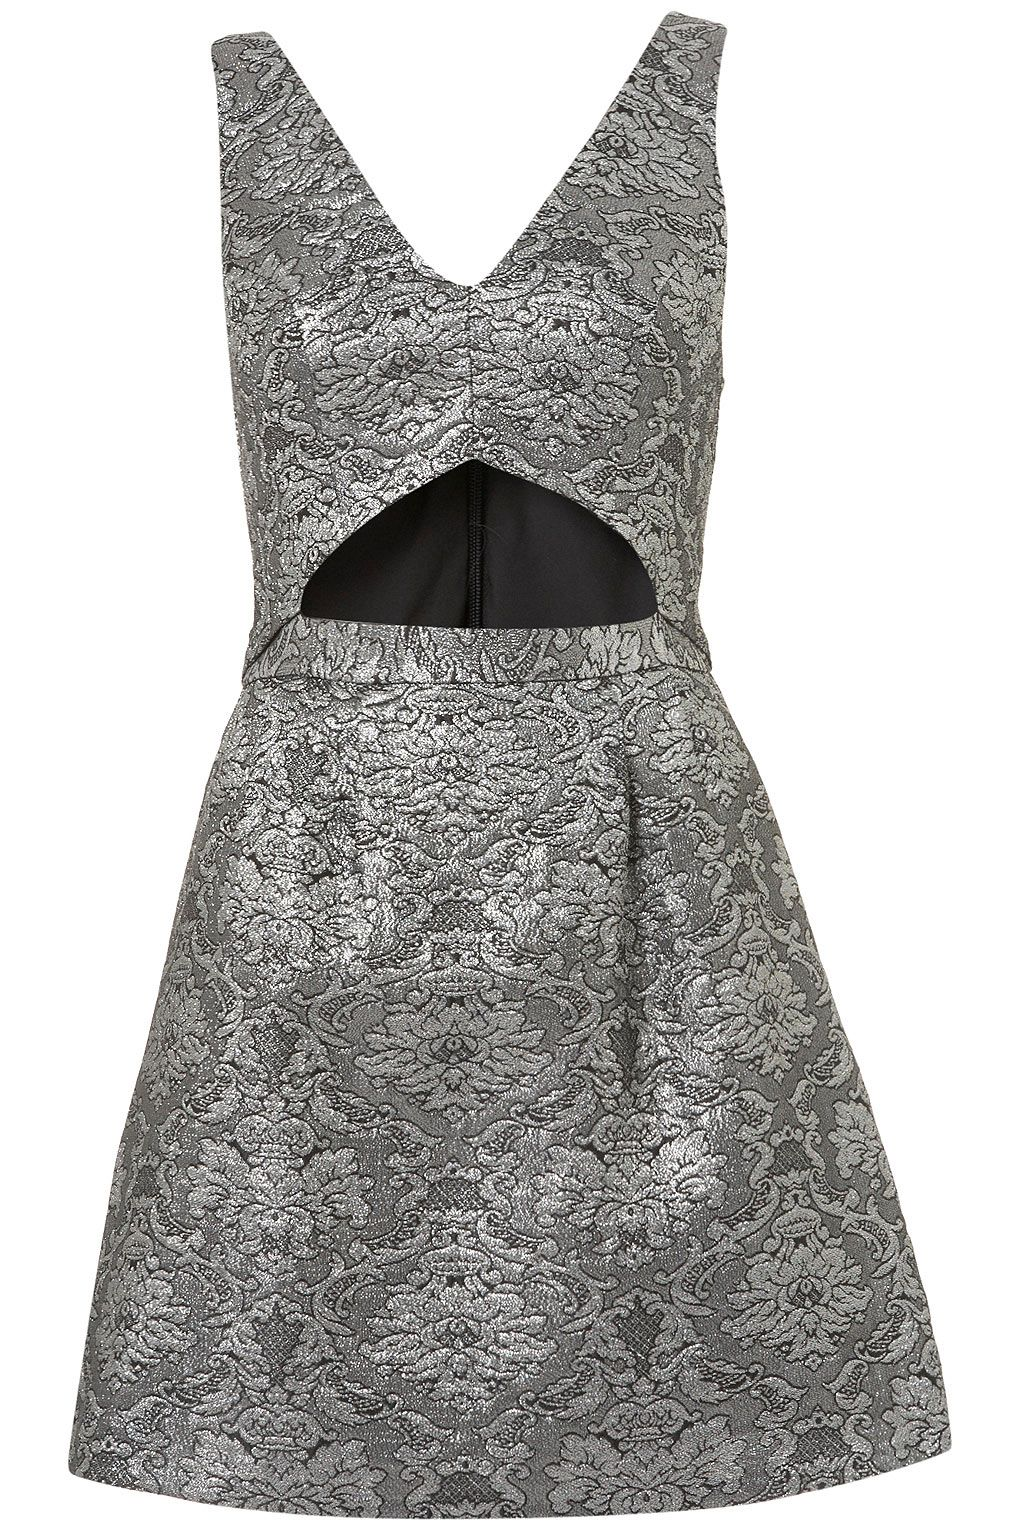 TOPshop   Fashion, Holiday party dresses, Dresses